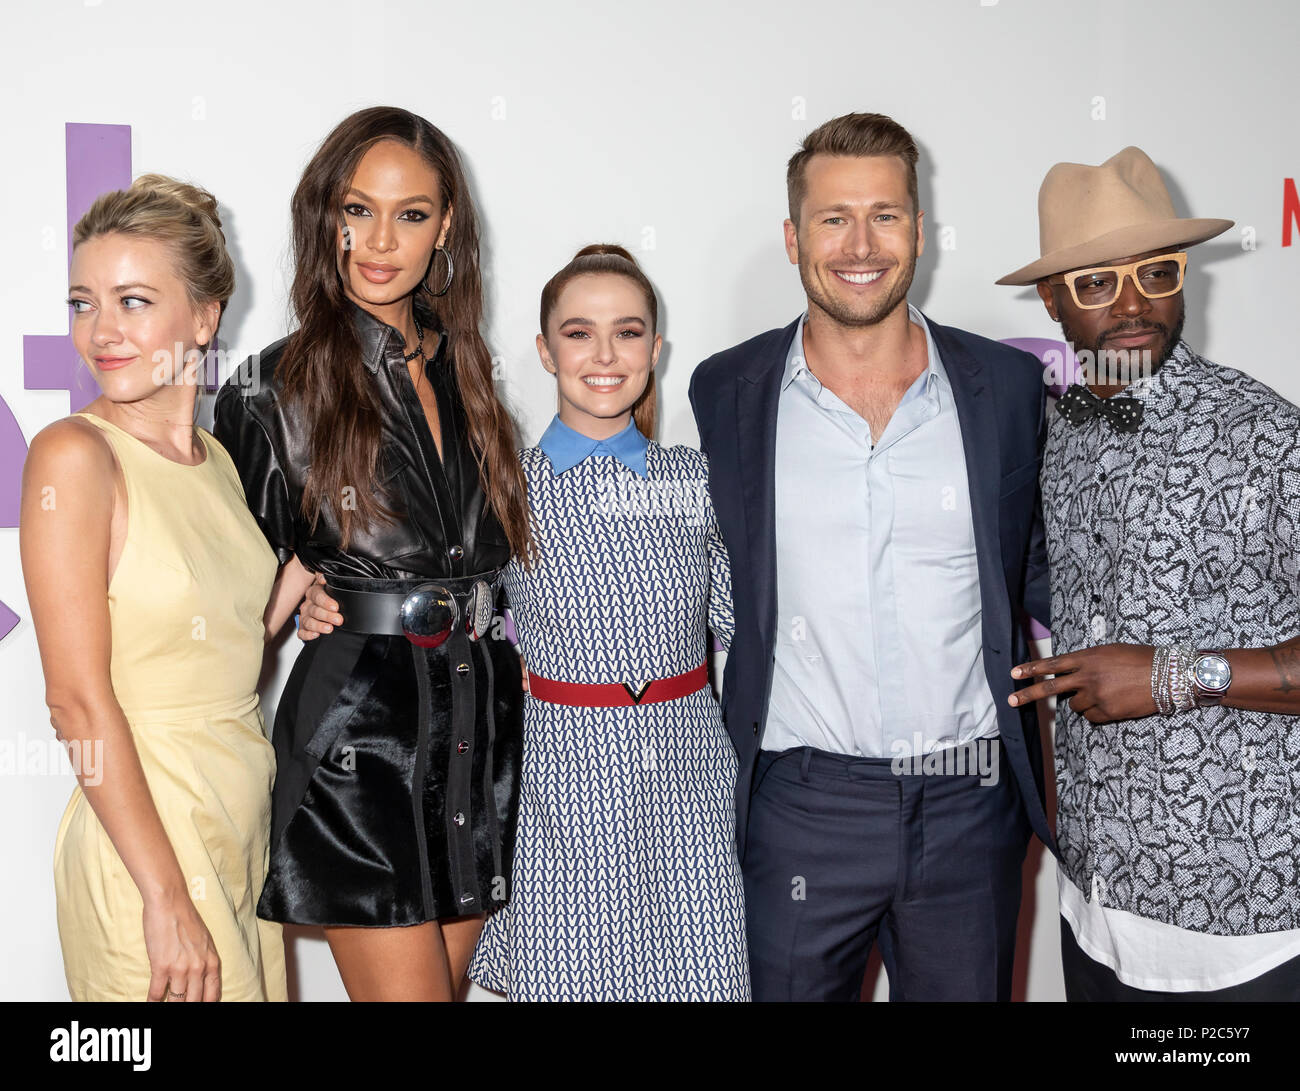 New York, NY, USA - June 12, 2018: Actors Meredith Hagner,Joan Small, Zoey Deutch, Glen Powell and Taye Diggs attend the New York special screening of - Stock Image